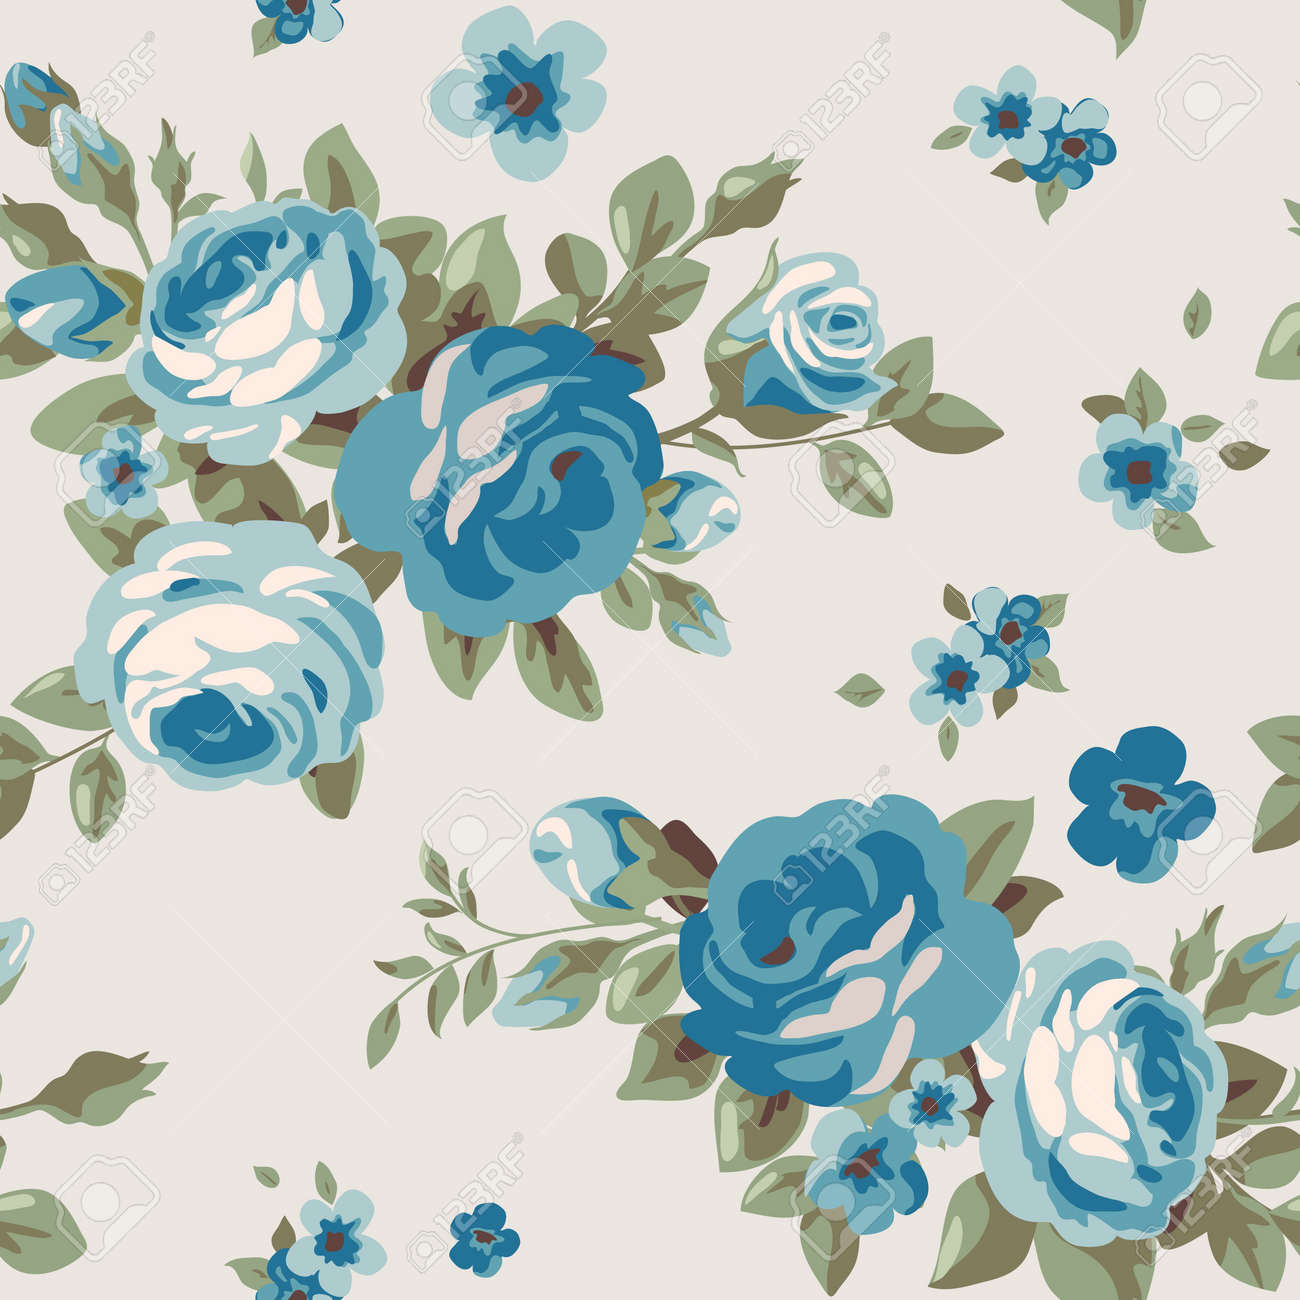 Seamless Pattern With Blue Flowers Vintage Floral Wallpaper Blooming Roses Stock Vector